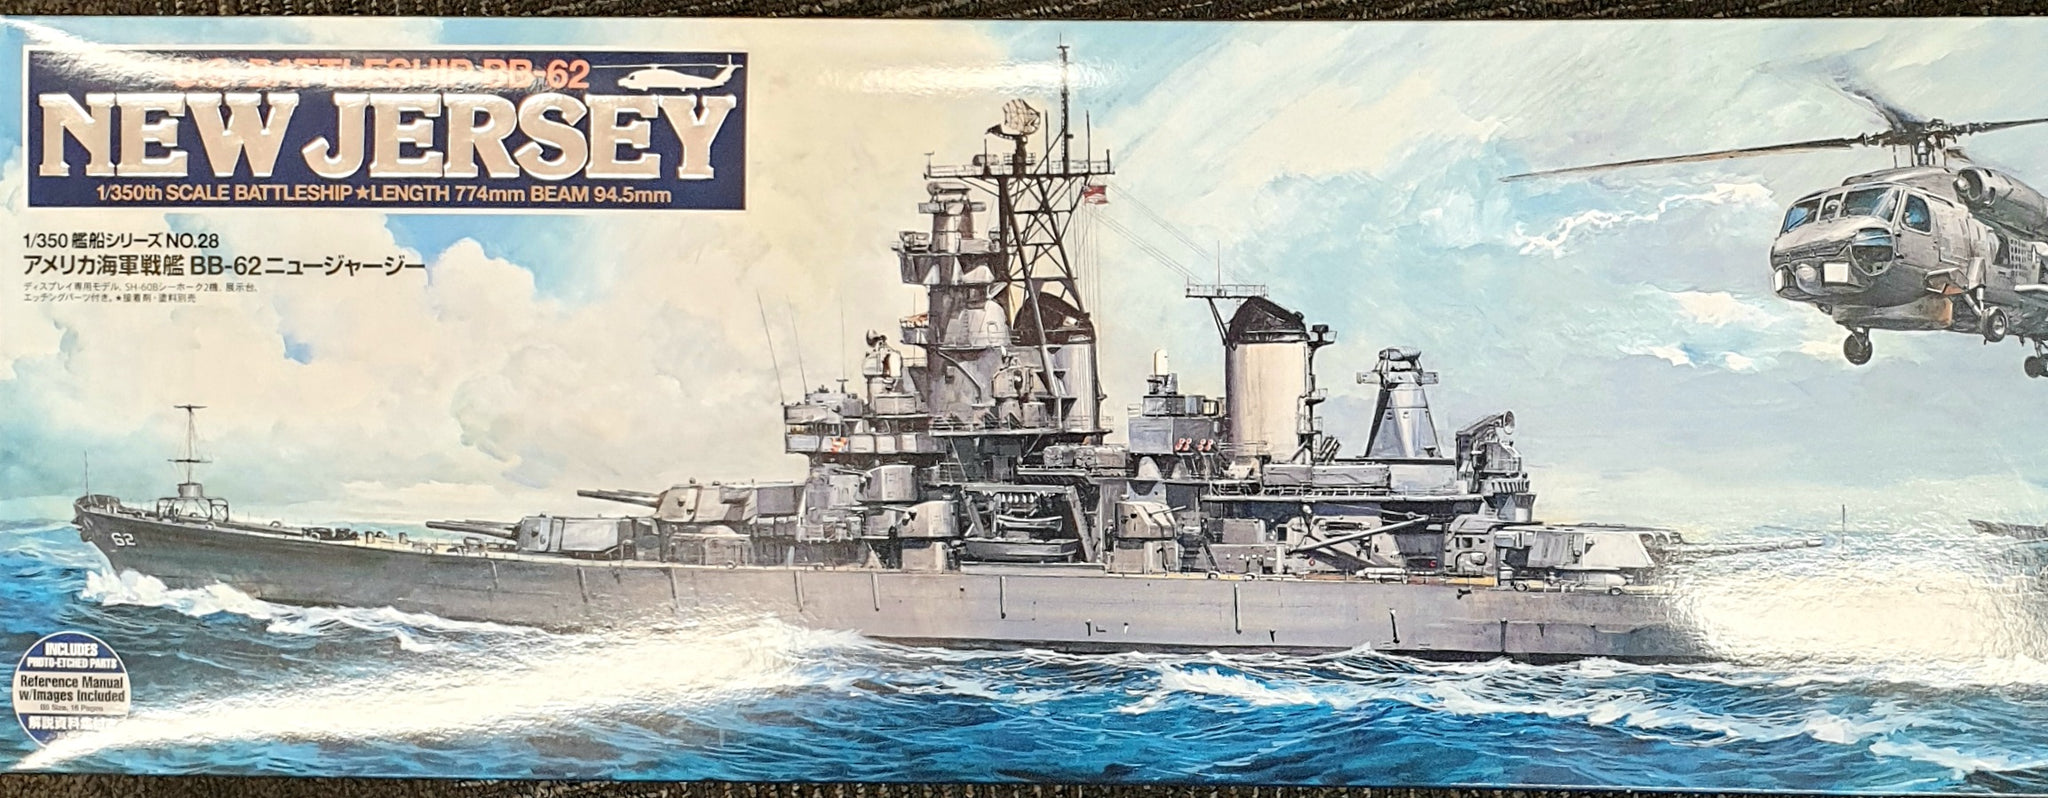 New Jersey Ship Model Kit